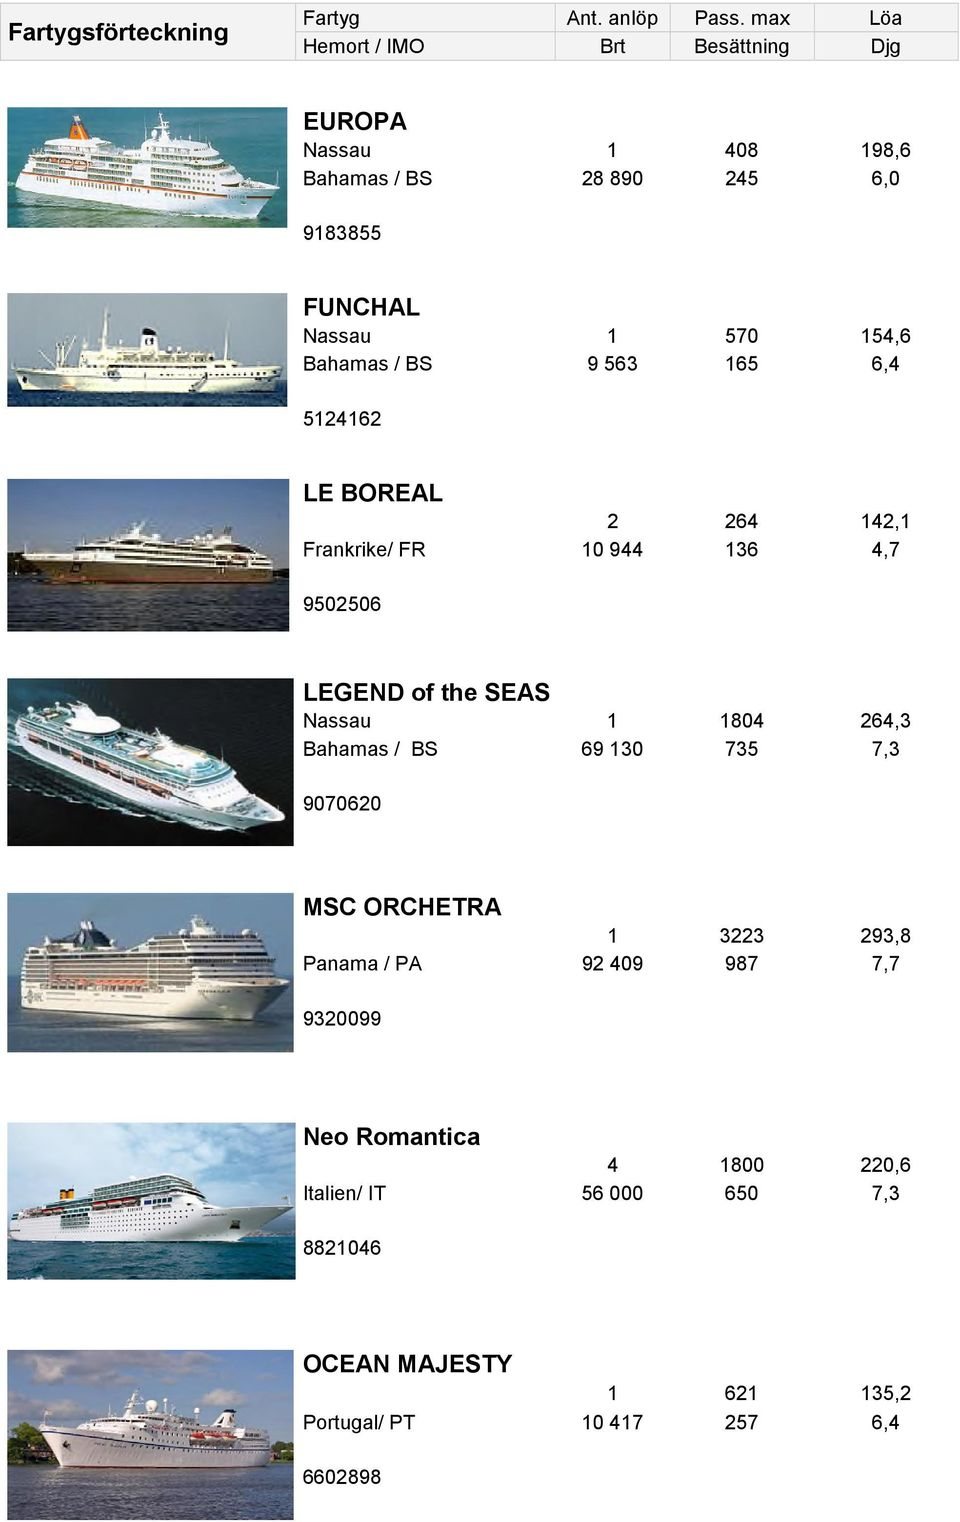 165 6,4 5124162 LE BOREAL Frankrike/ FR 2 264 142,1 10 944 136 4,7 9502506 LEGEND of the SEAS Nassau 1 1804 264,3 69 130